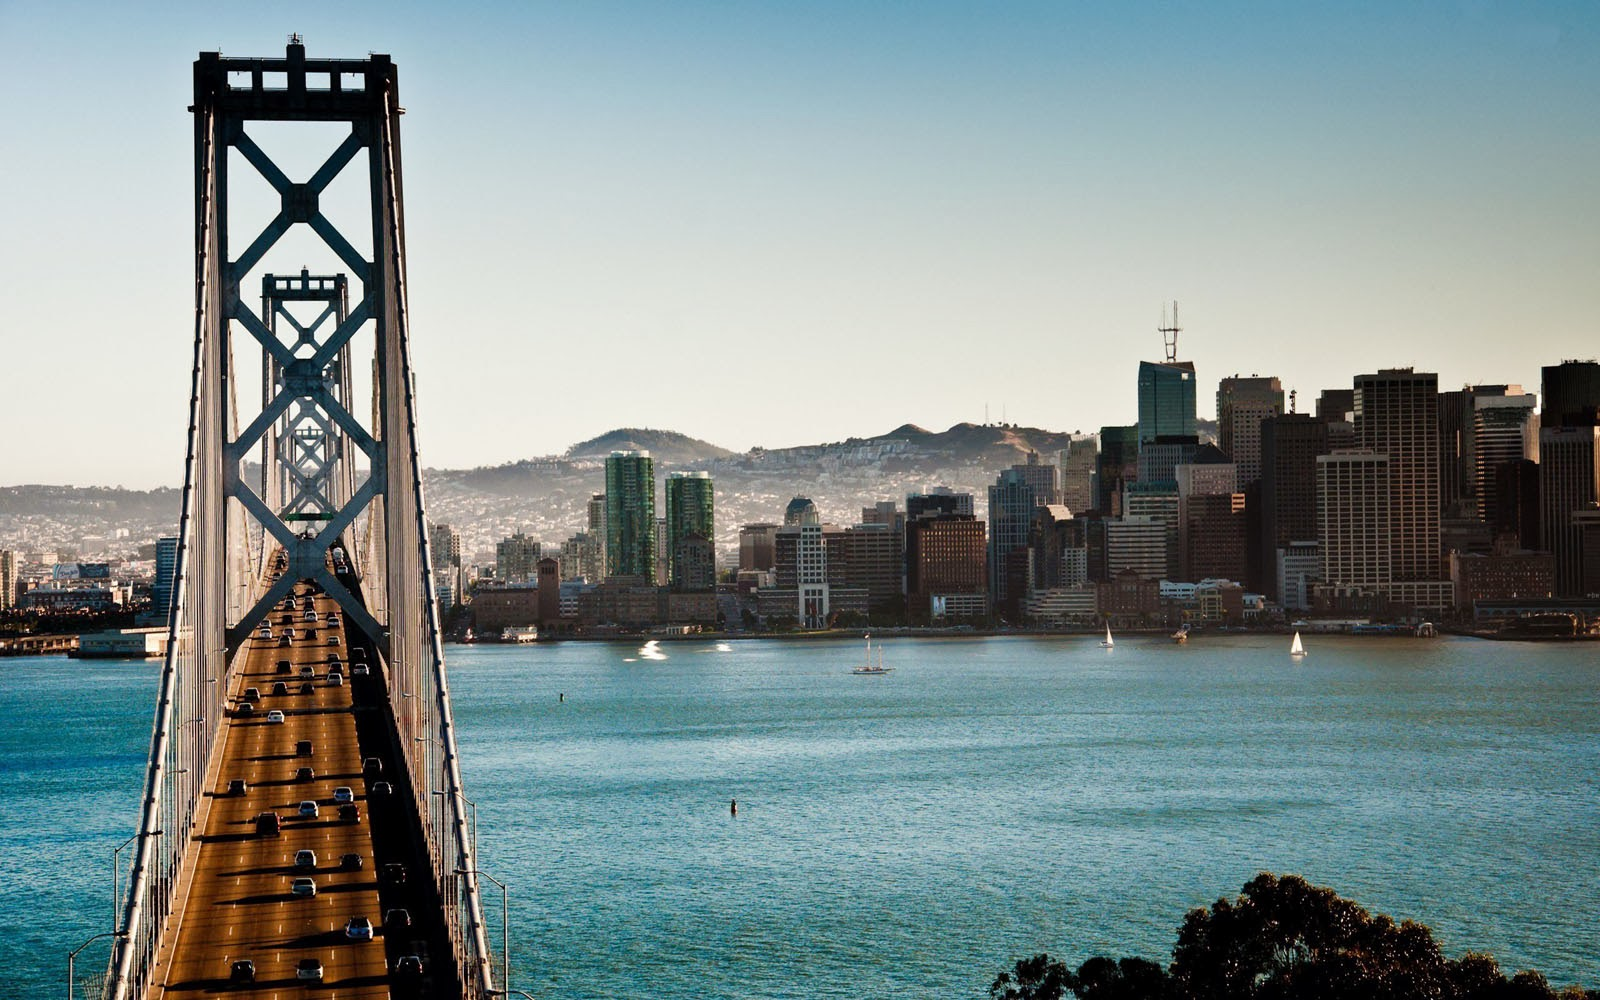 Tag San Francisco Bay Bridge Wallpapers BackgroundsPhotos Images 1600x1000